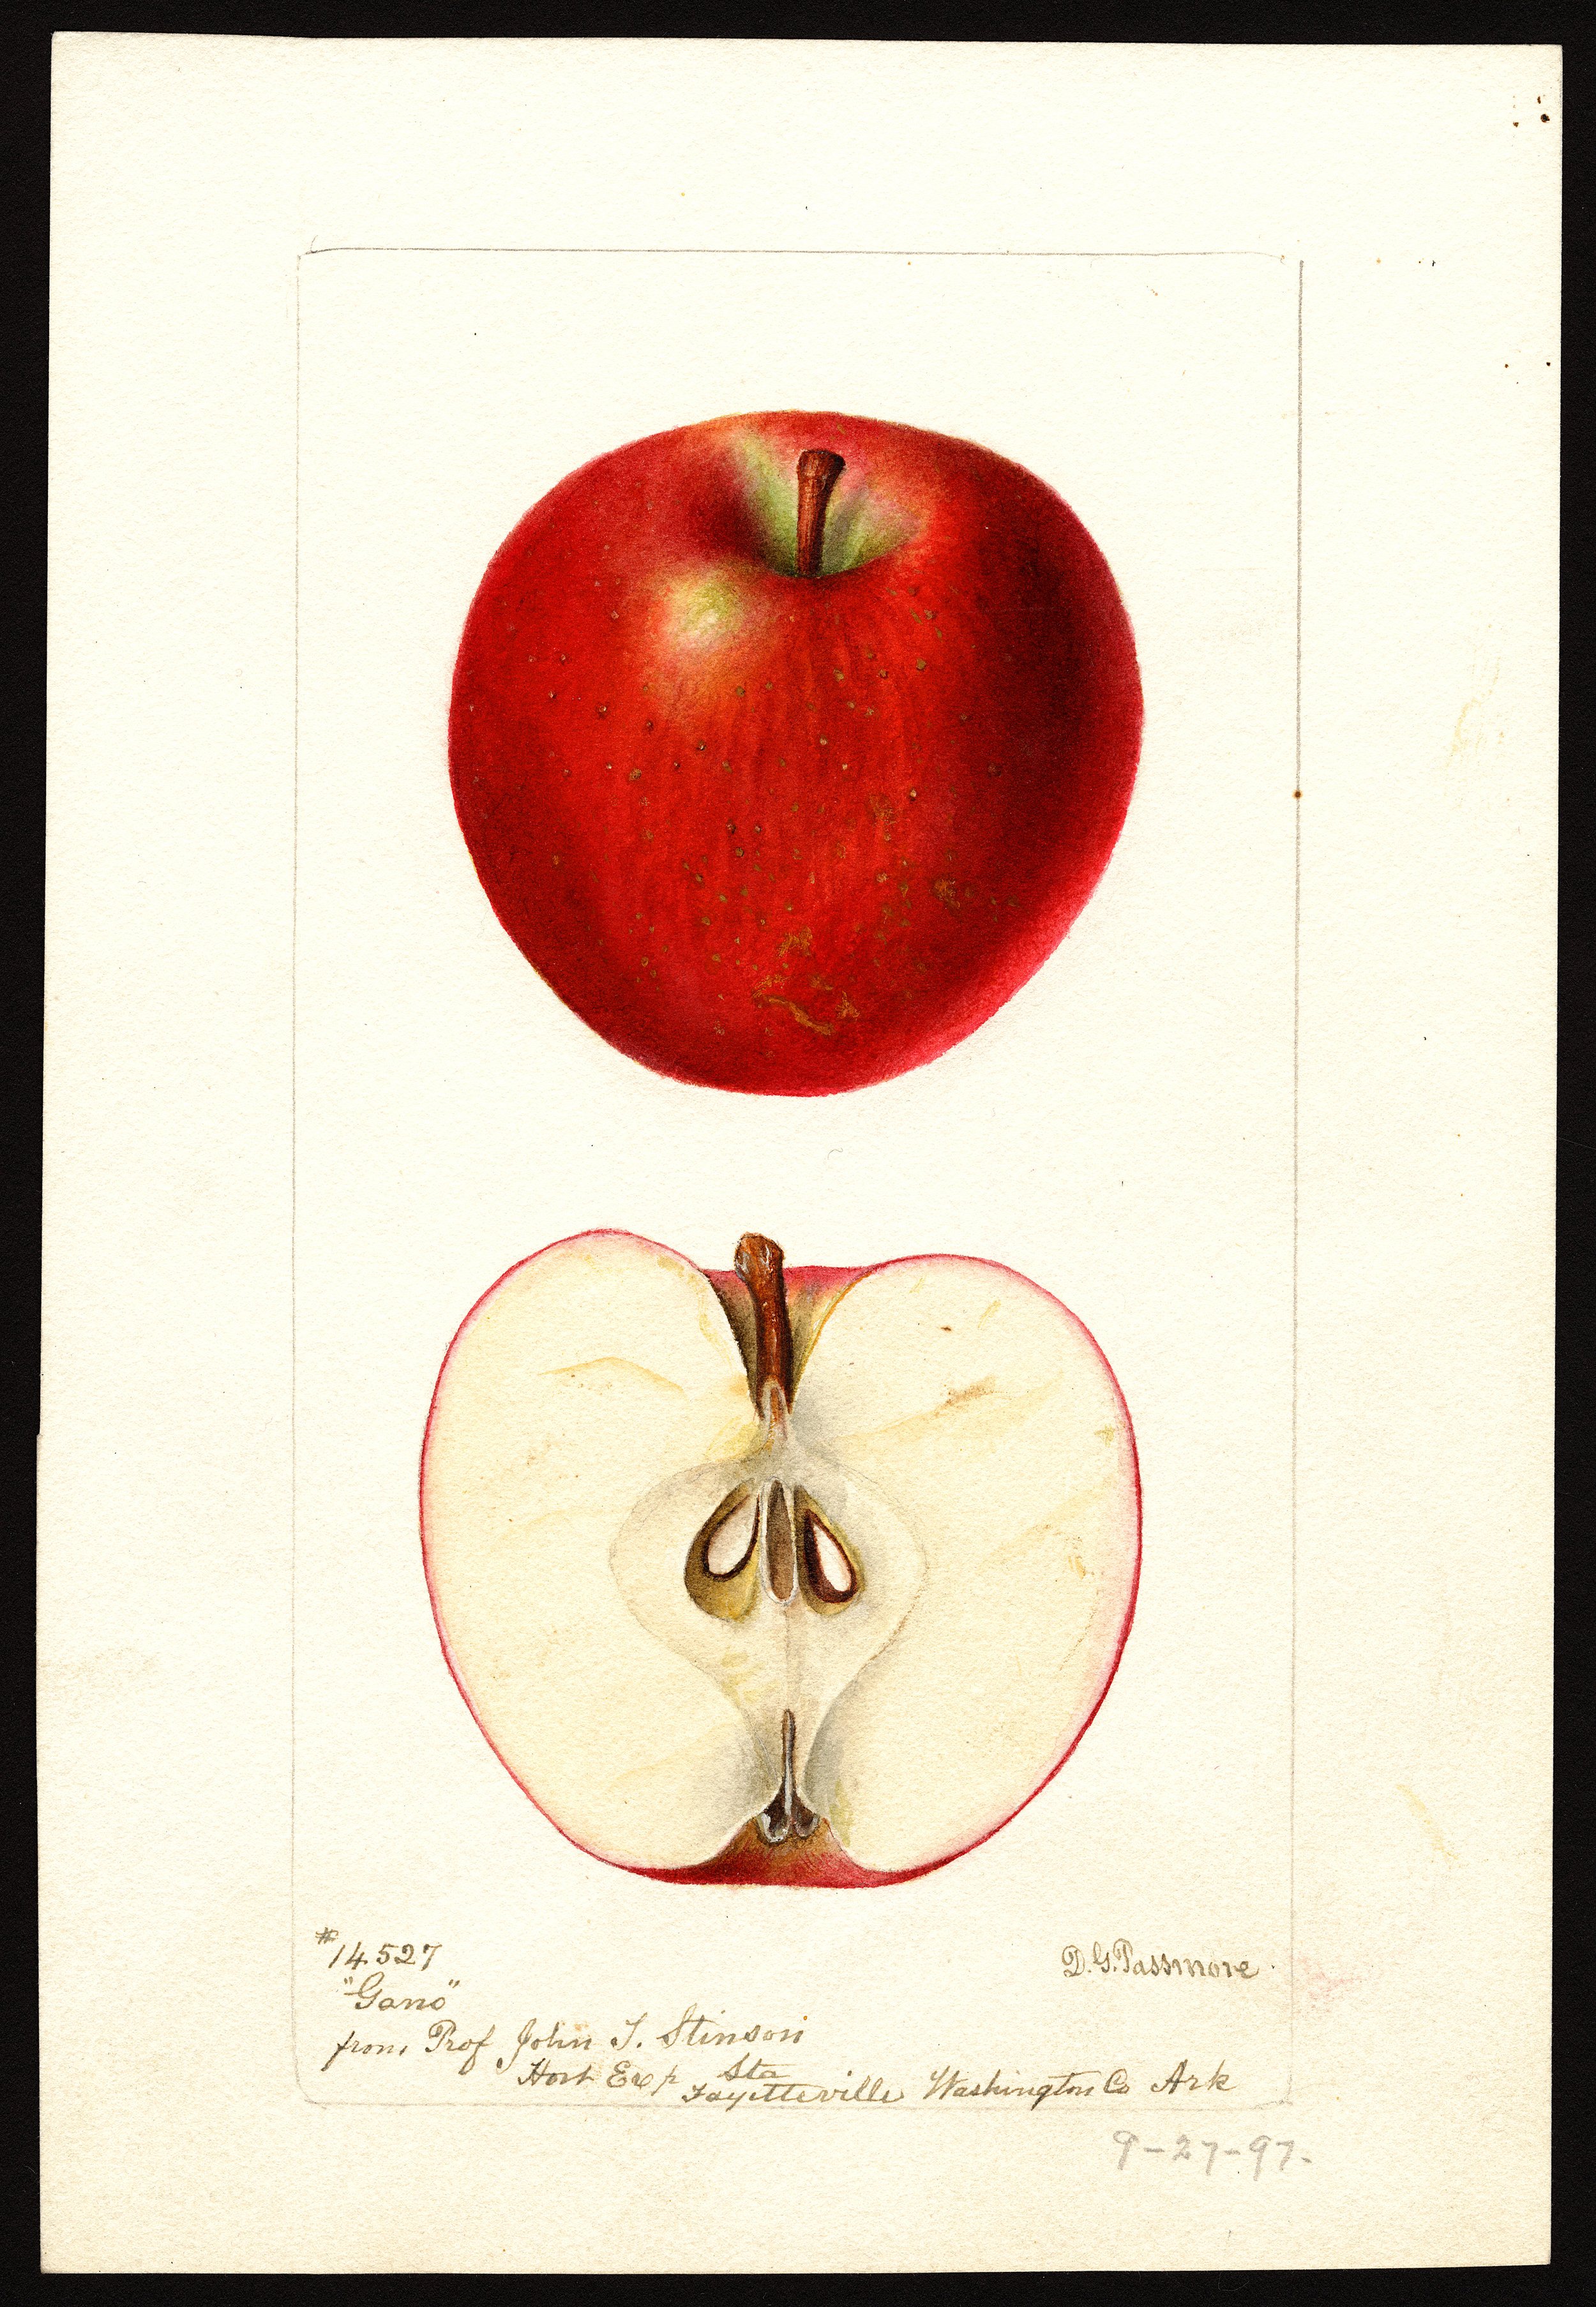 The Gano apple, as depicted in a drawing from the U.S. Department of Agriculture (USDA) Pomological Watercolor Collection.